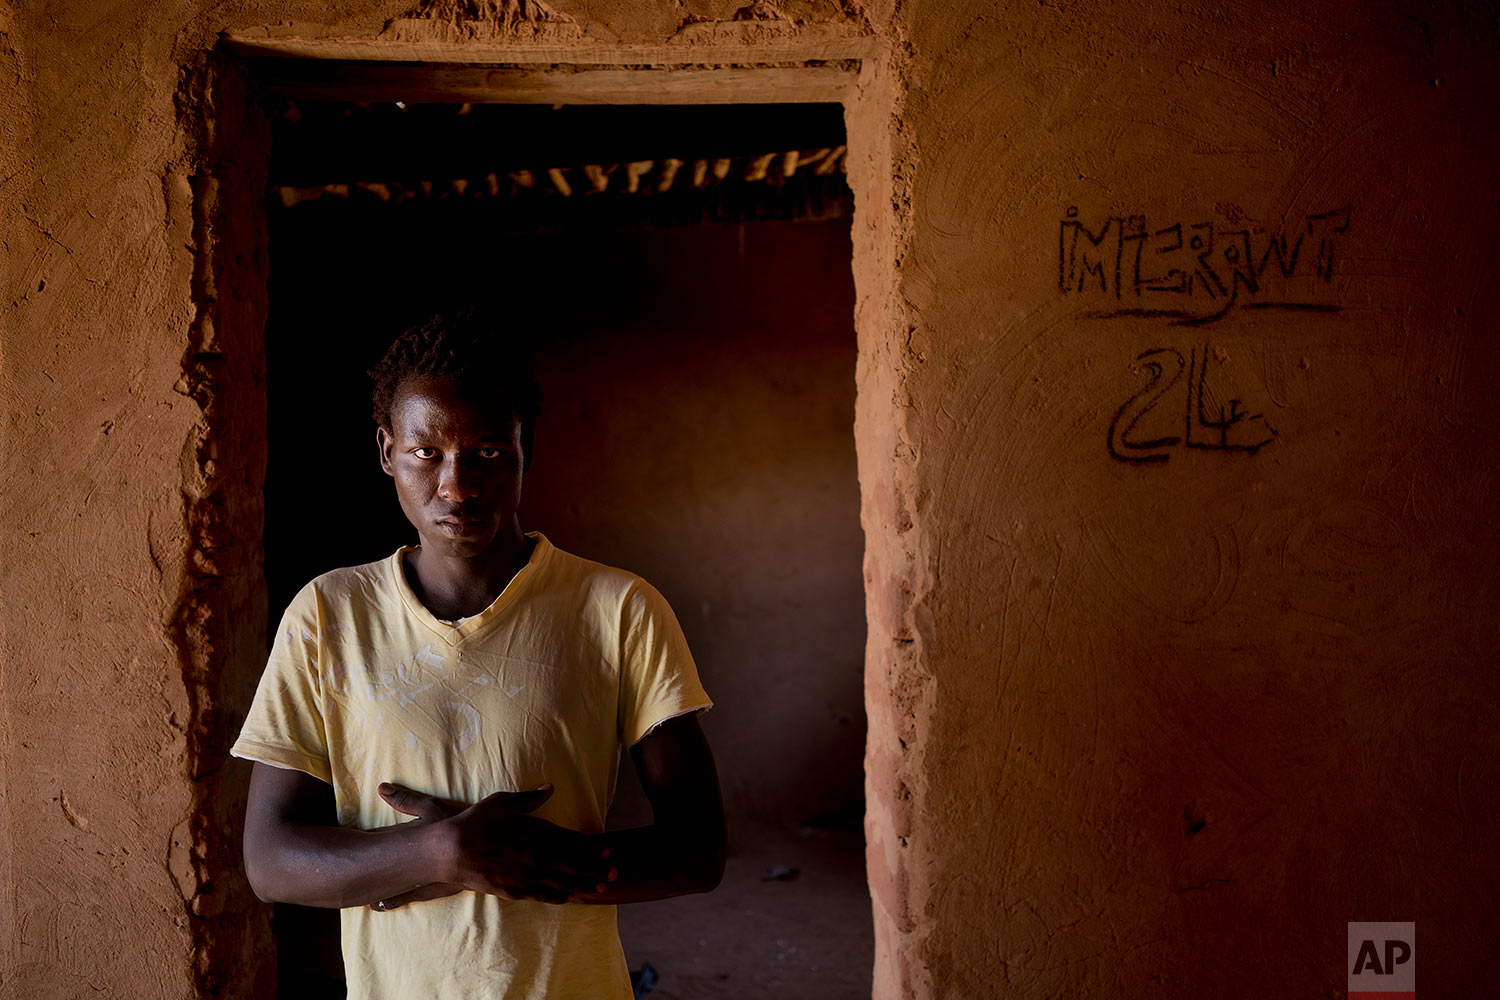 Aliou Kande poses for a photograph in an IOM transit camp in Arlit, Niger, on May 31, 2018. (AP Photo/Jerome Delay)